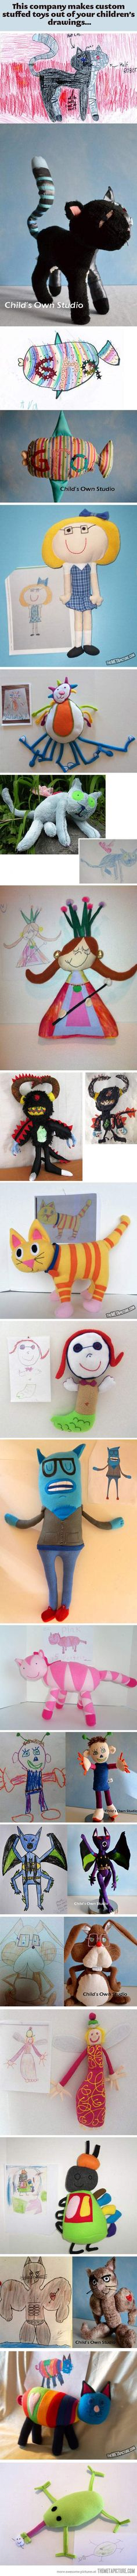 Company that makes the crazy creations your kids draw into stuffed animals, super cool